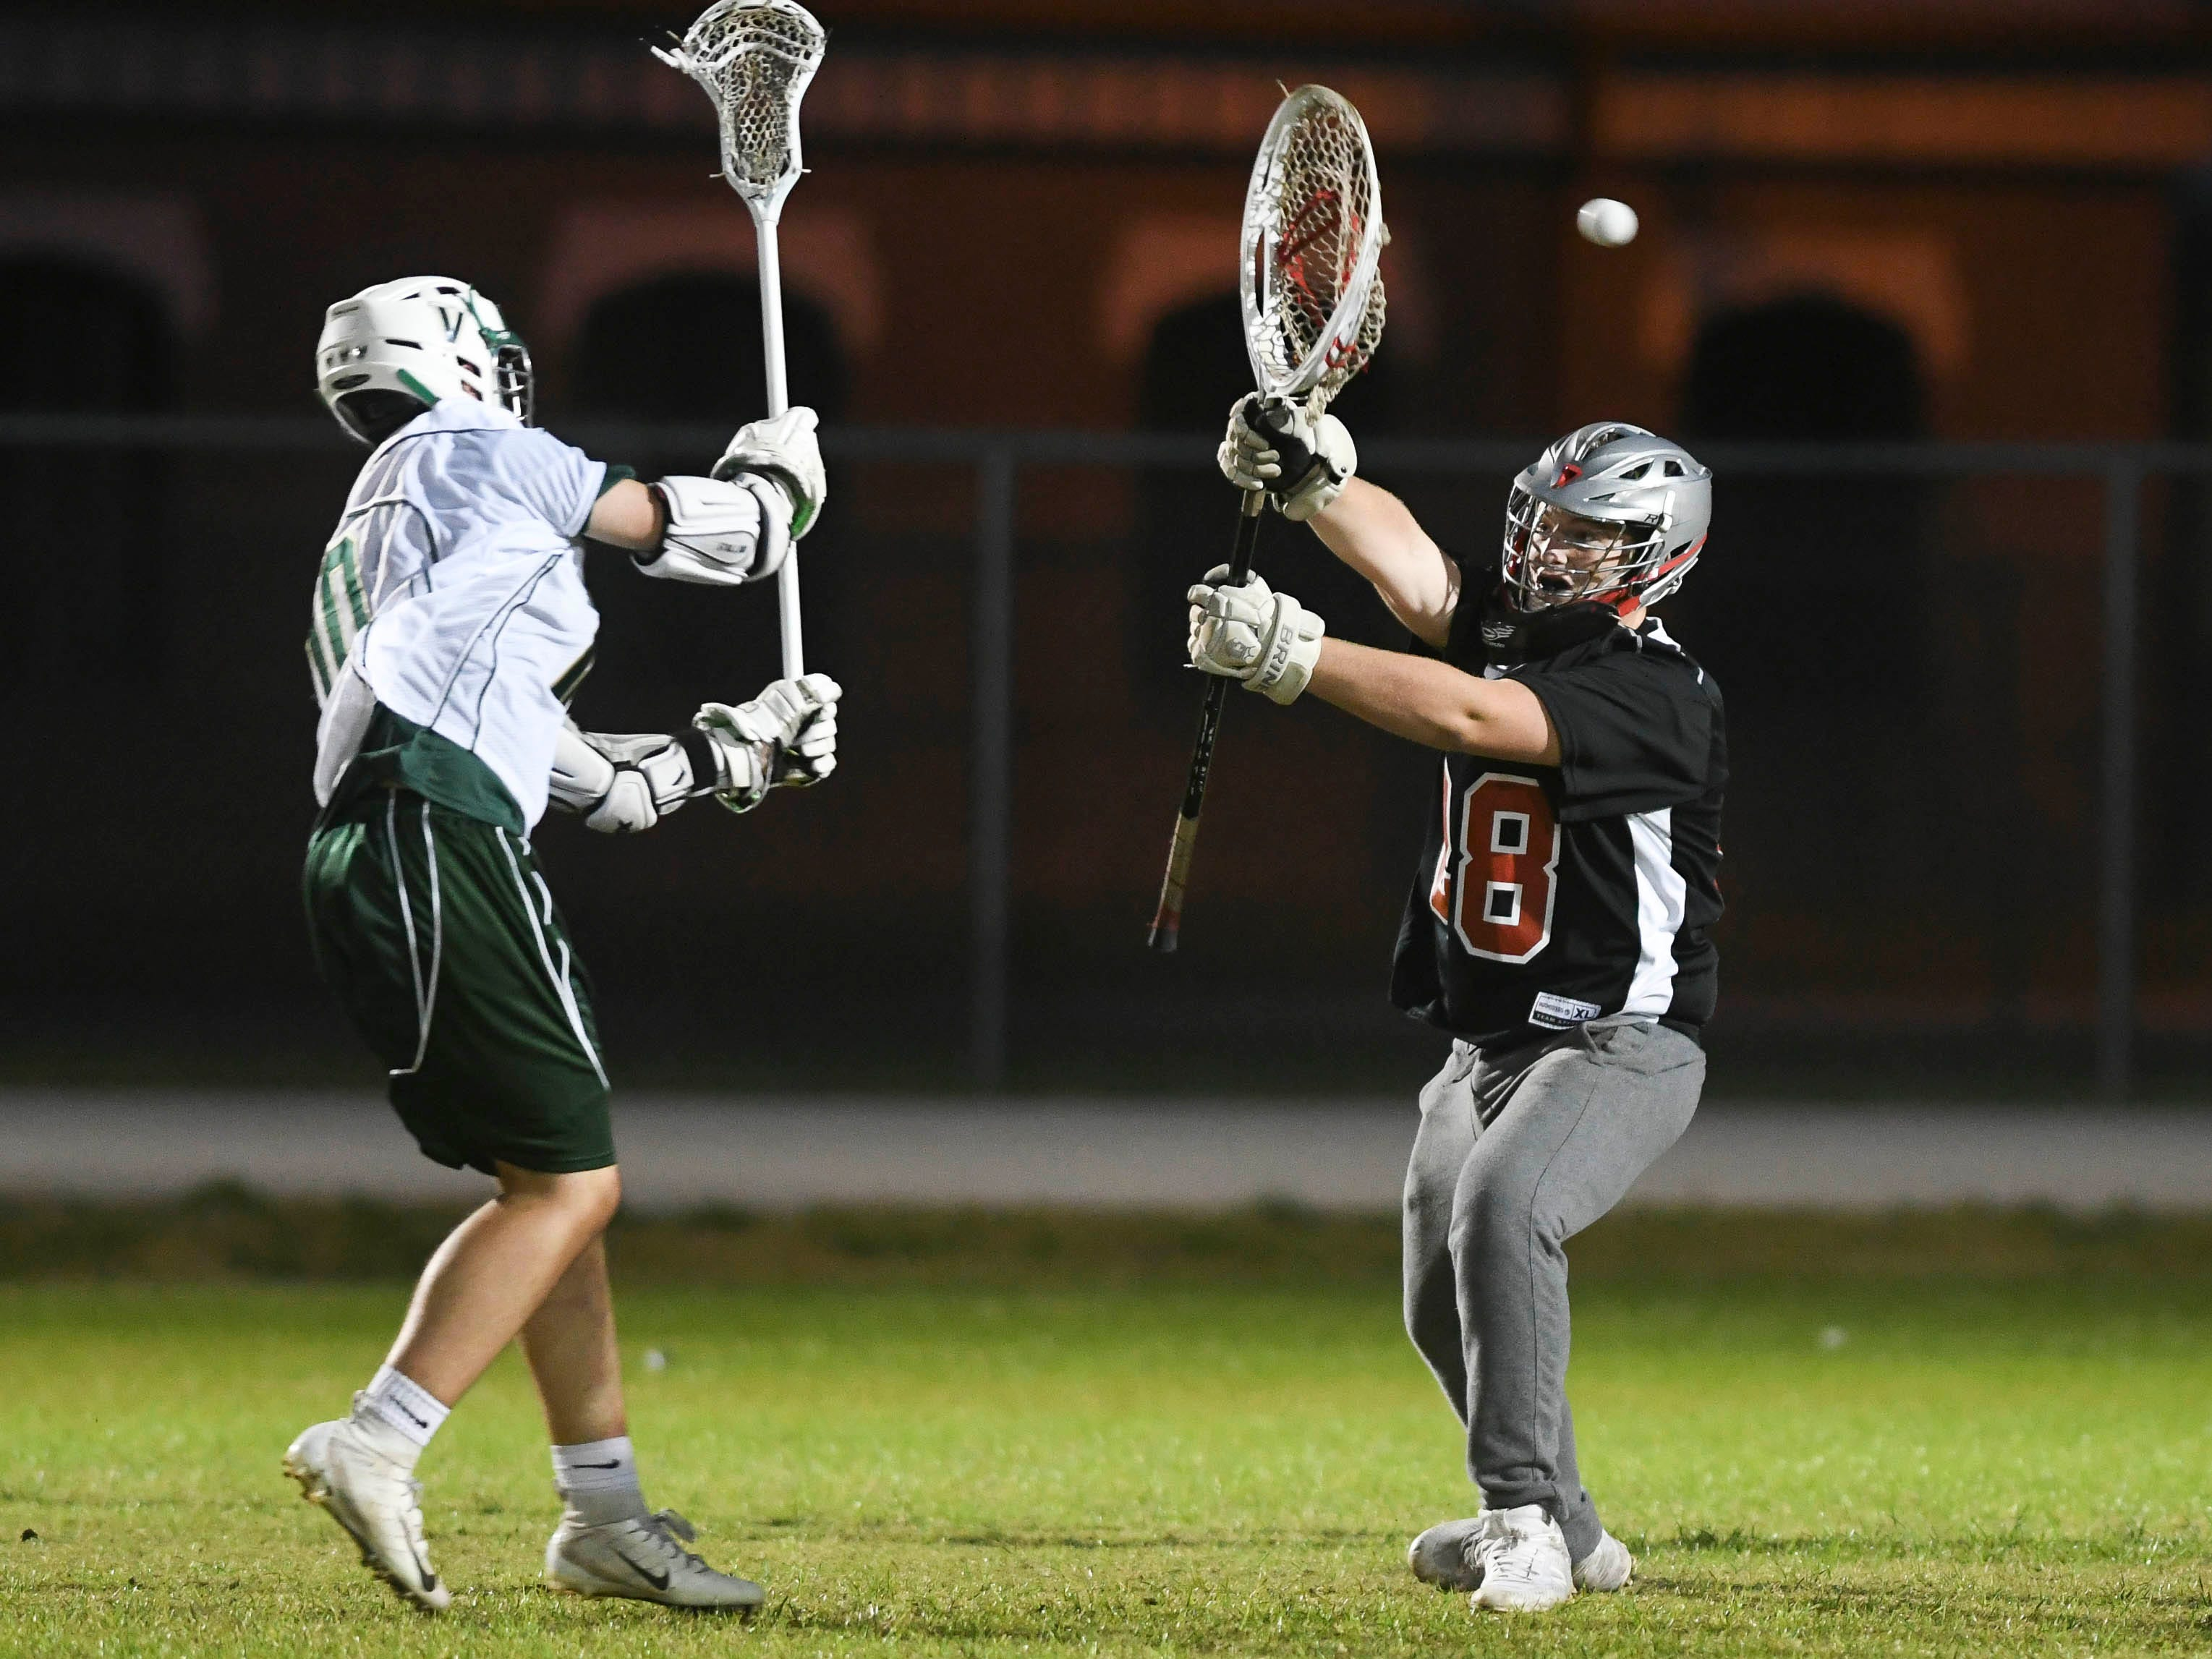 Matt Lynch of Viera shoots and scores over Satellite goalkeeper Jackson Lacy during Tuesday's game in Viera